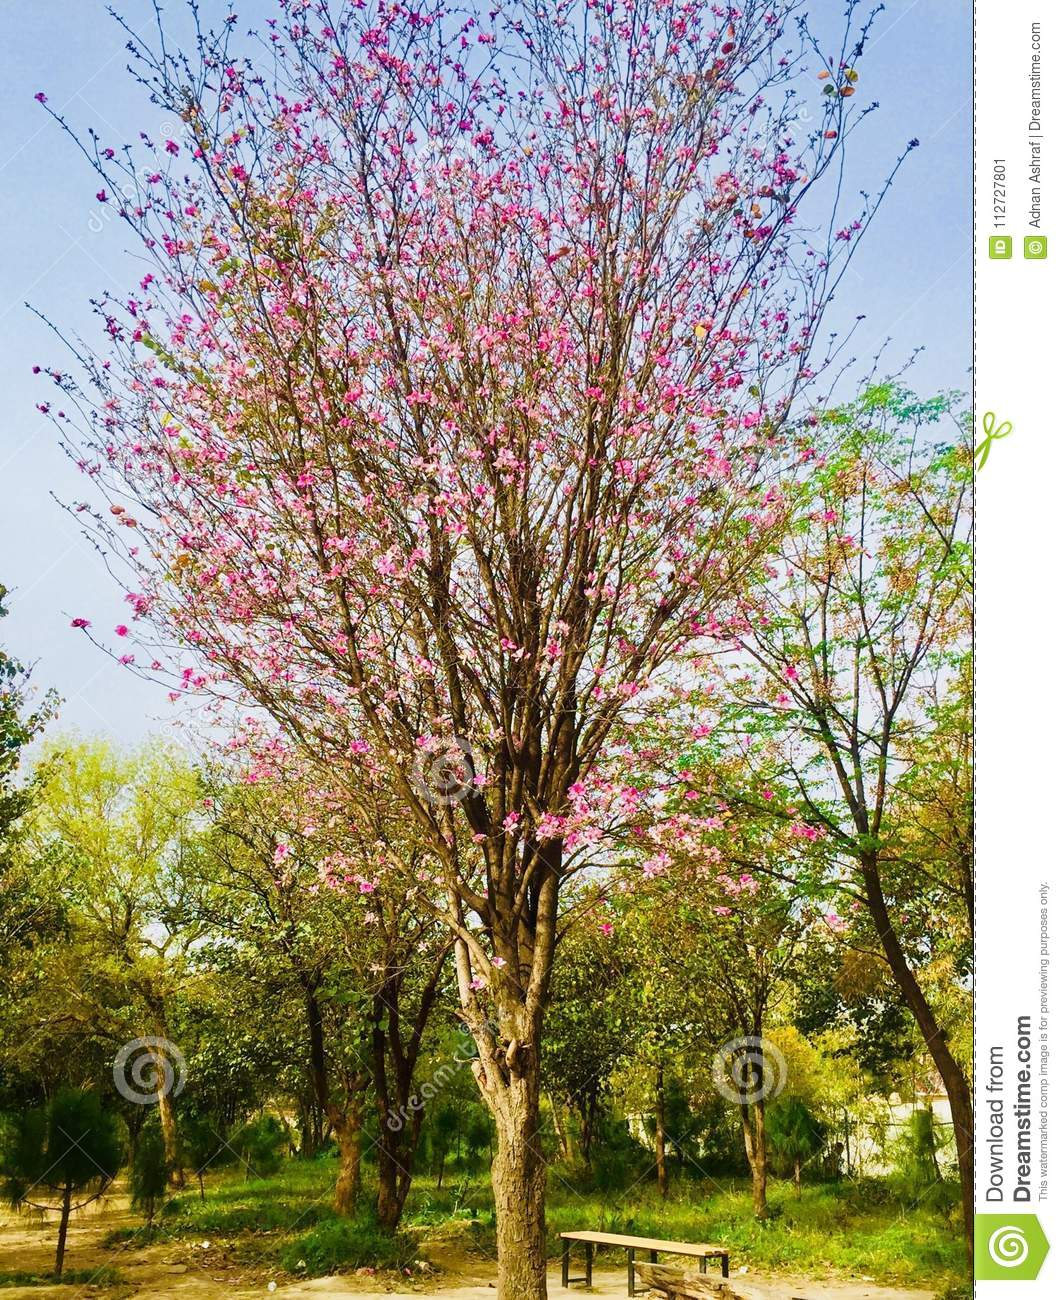 Flowers beauty in islamabad stock image image of trees beautiful spring and summer beauty of flowers in beautiful green city islamabad pakistan natural scenery of natural beauty morning spring and evening daylight in izmirmasajfo